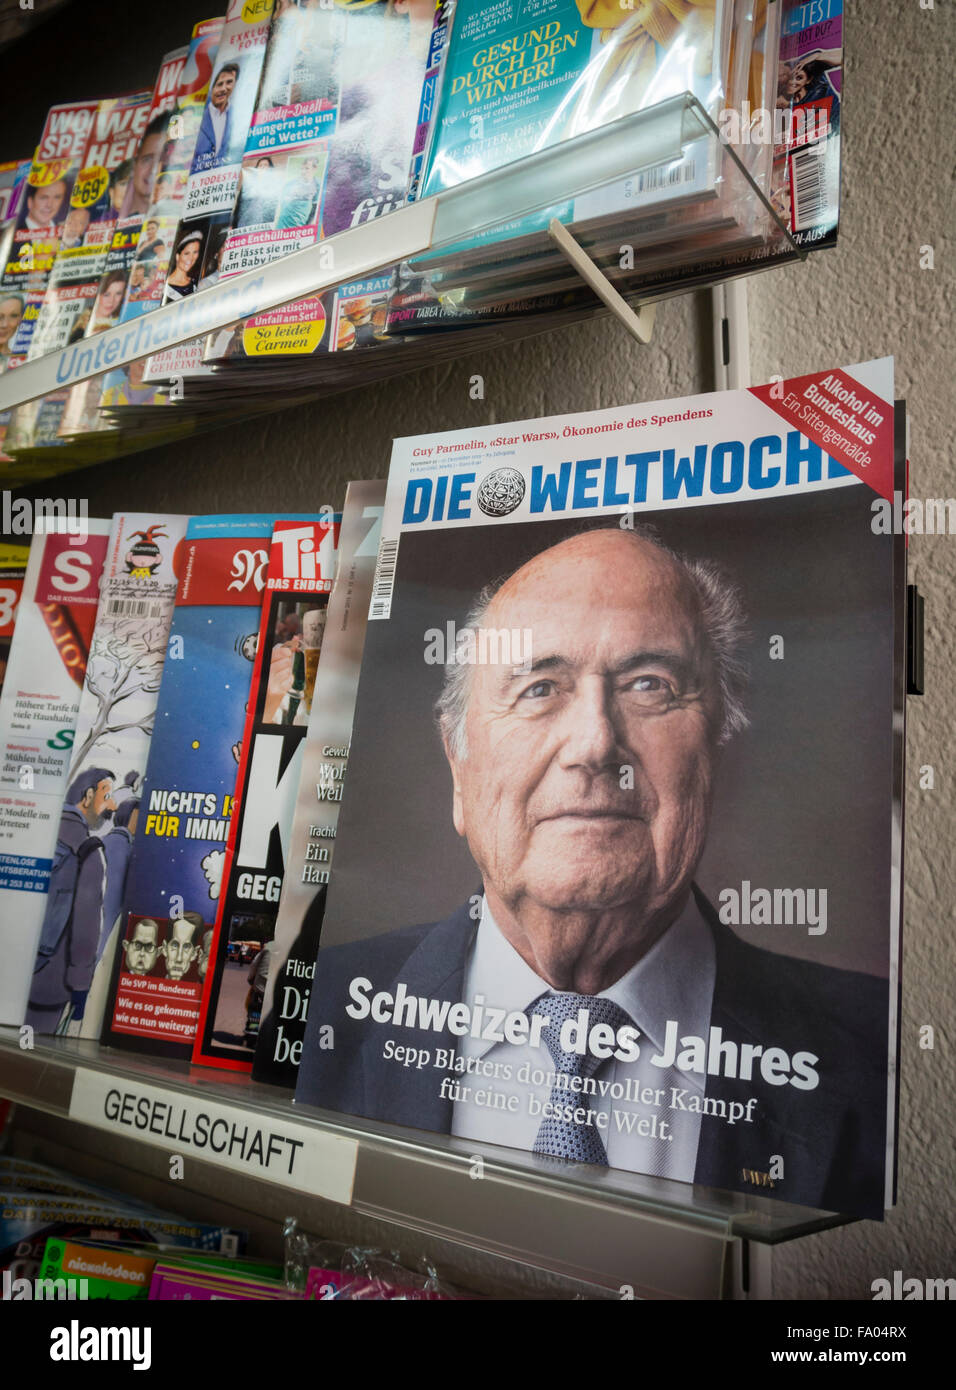 The portrait of suspended FIFA boss Sepp Blatter is featured on the cover of Swiss 'Weltwoche' magazine - Stock Image